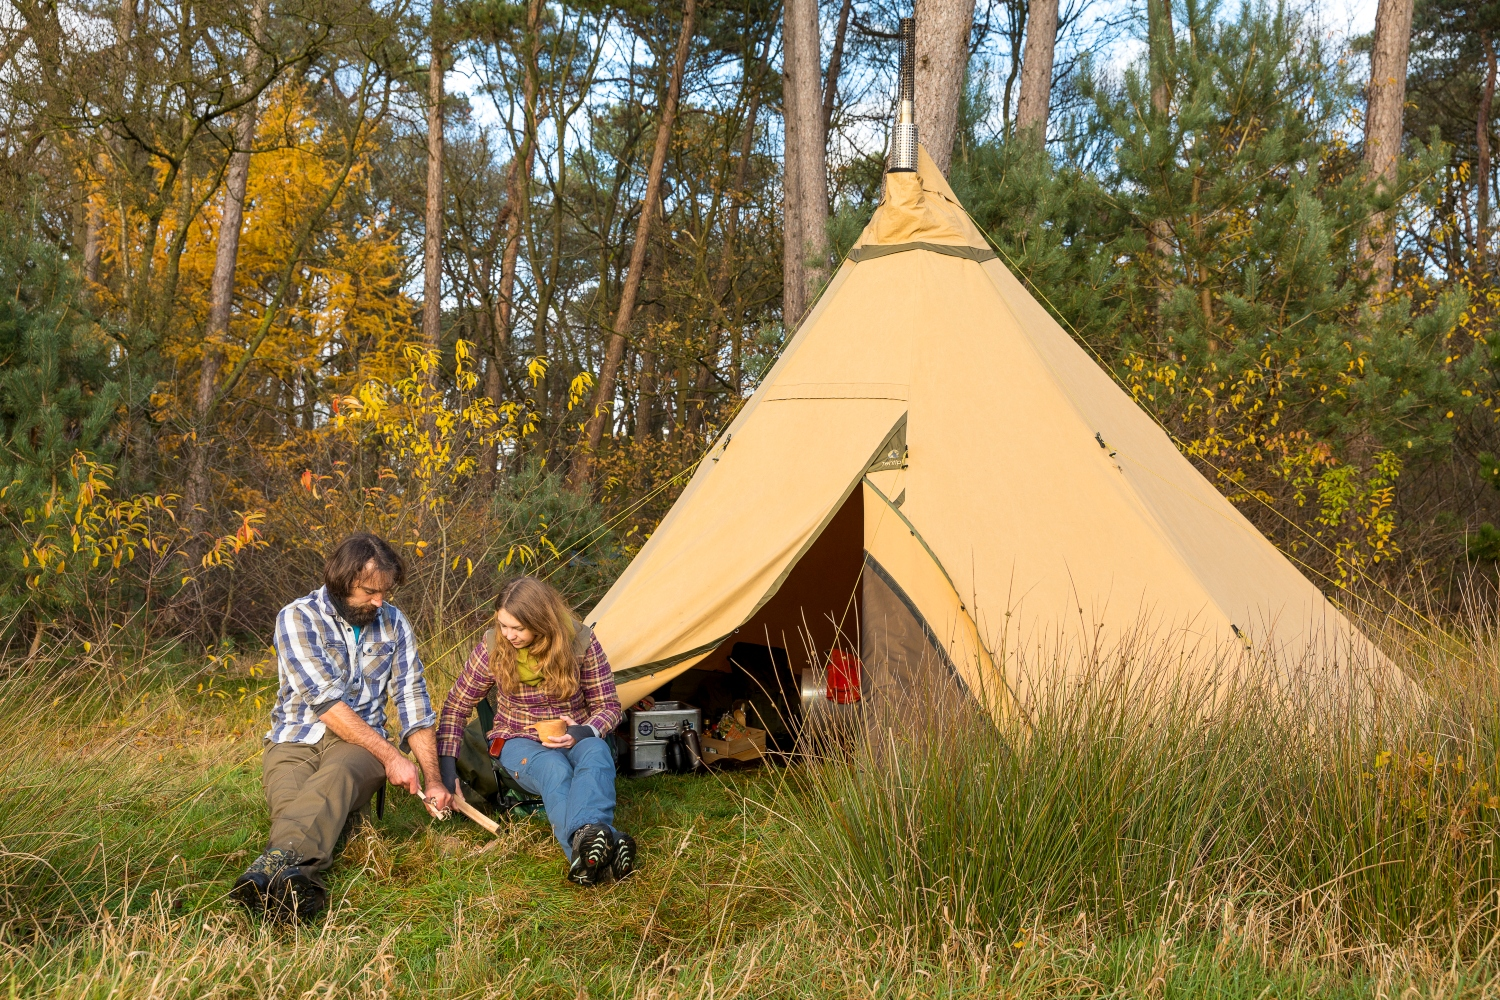 Koen Arts and his wife Gina in front of the tipi